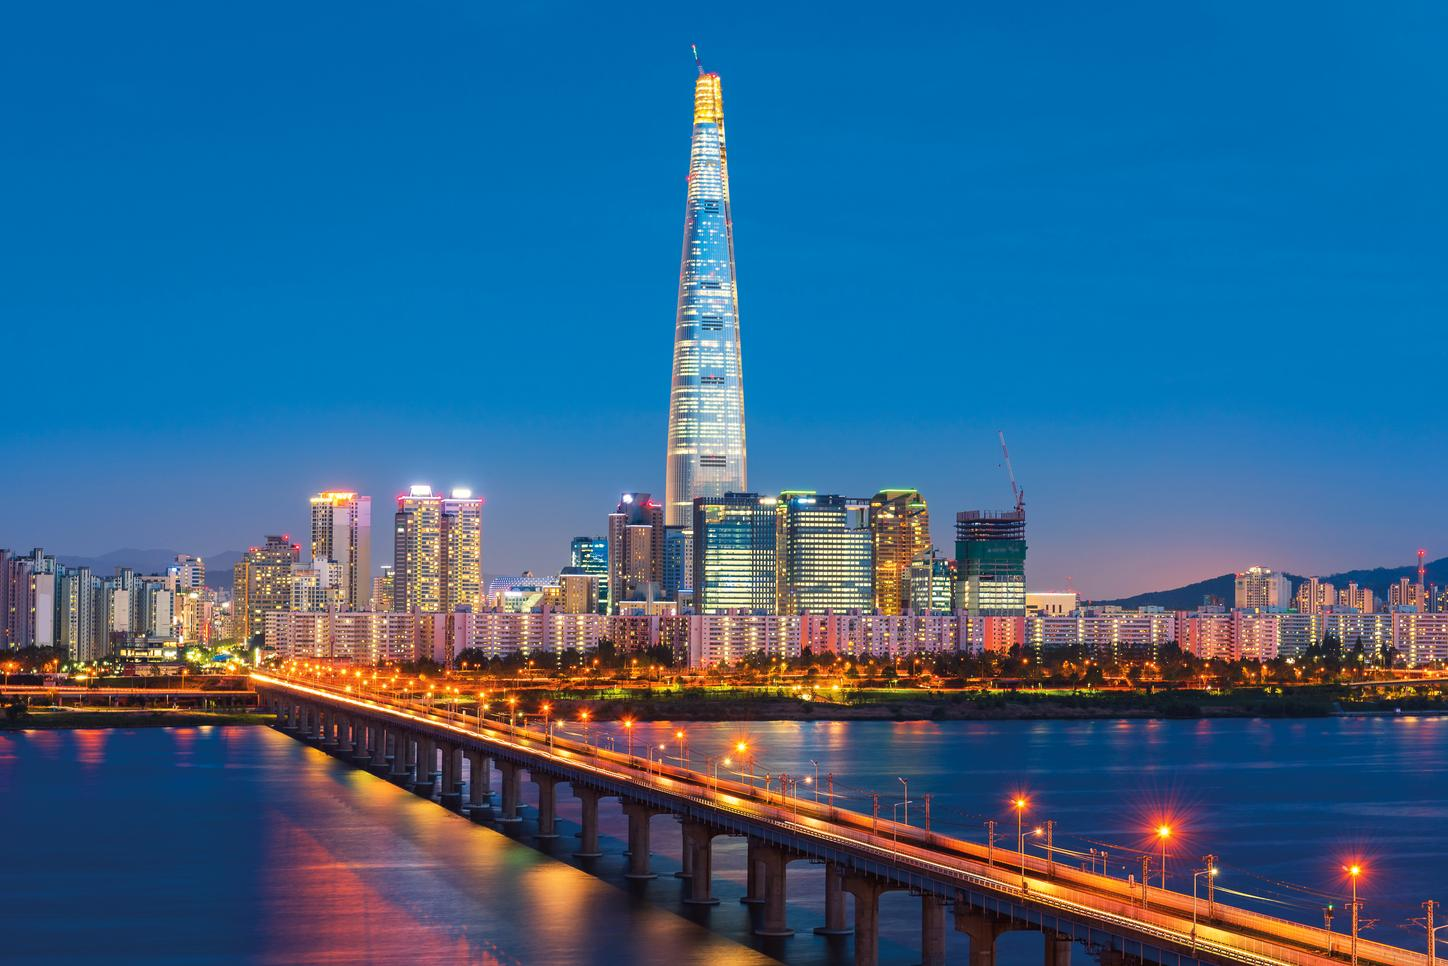 The image shows the Lotte World Tower.